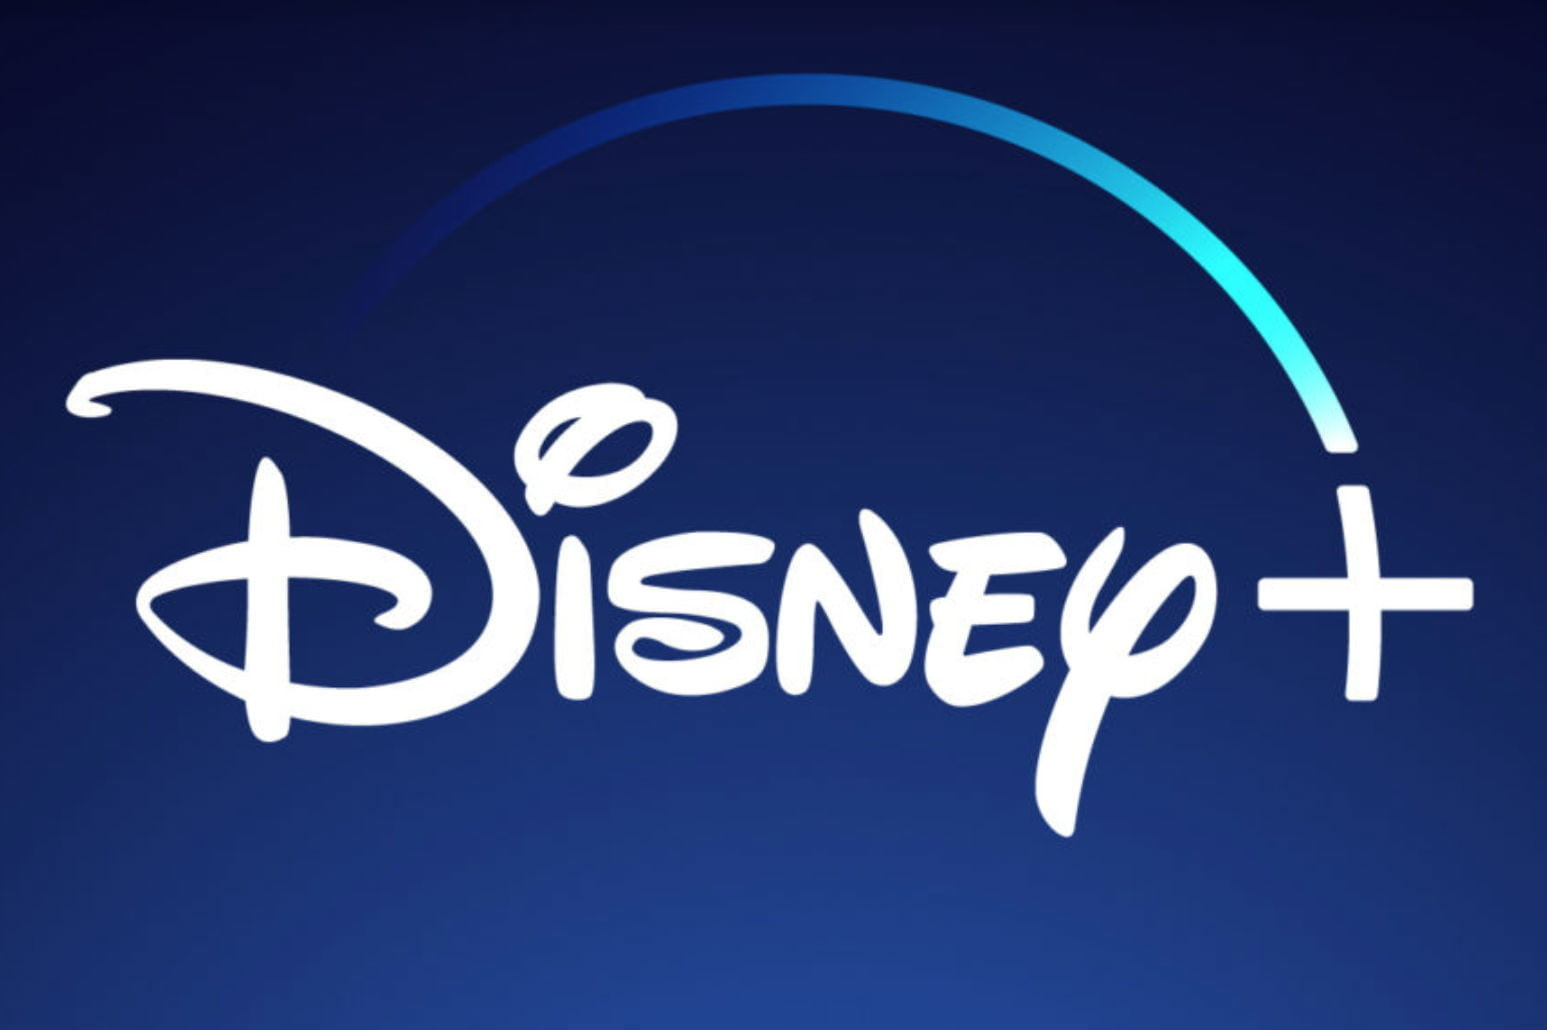 disney-plus-logo-1547x1030.jpg